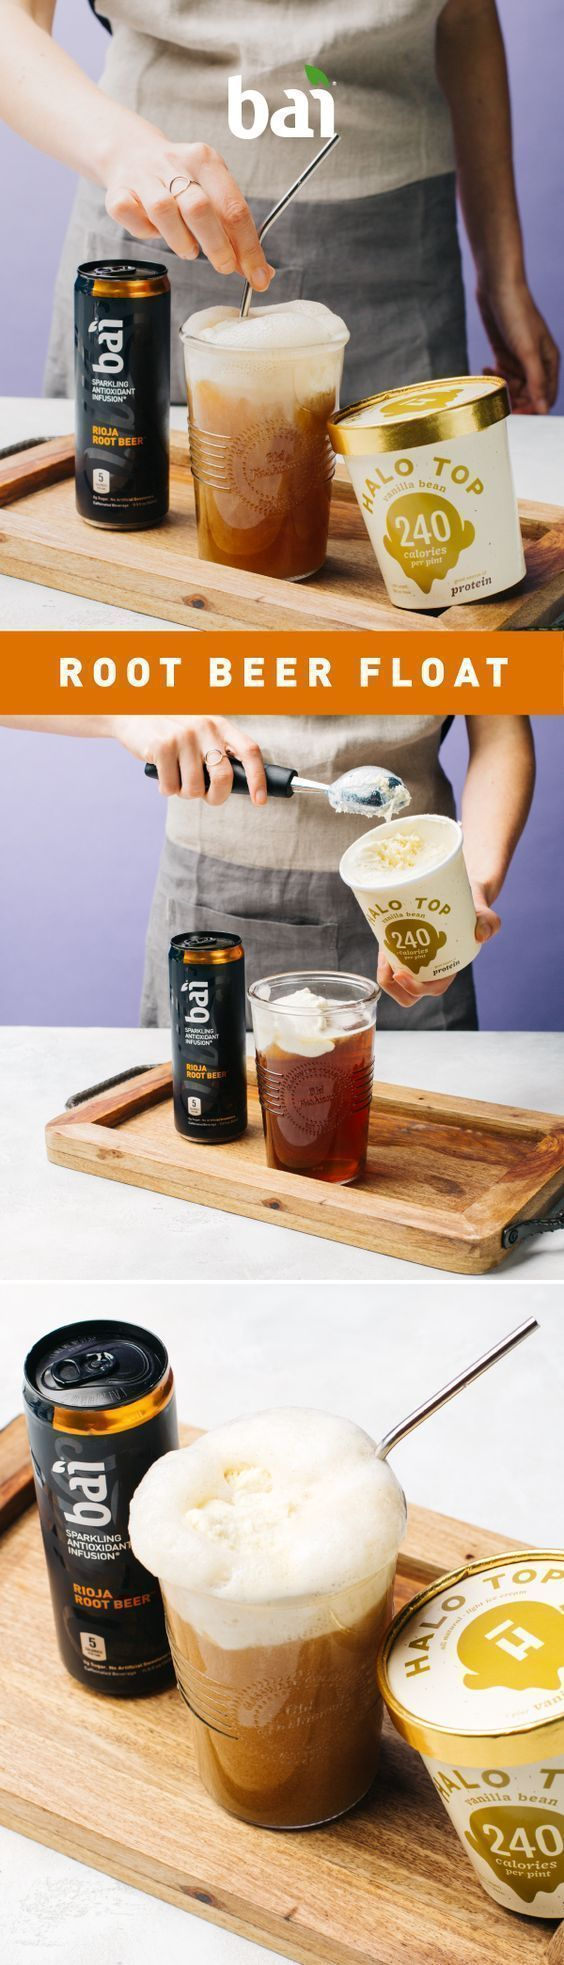 With this root beer float you cheat your guests  39 Taste buds to think that must be bad for s    With this root beer float you cheat your guests  39 Taste buds to think...